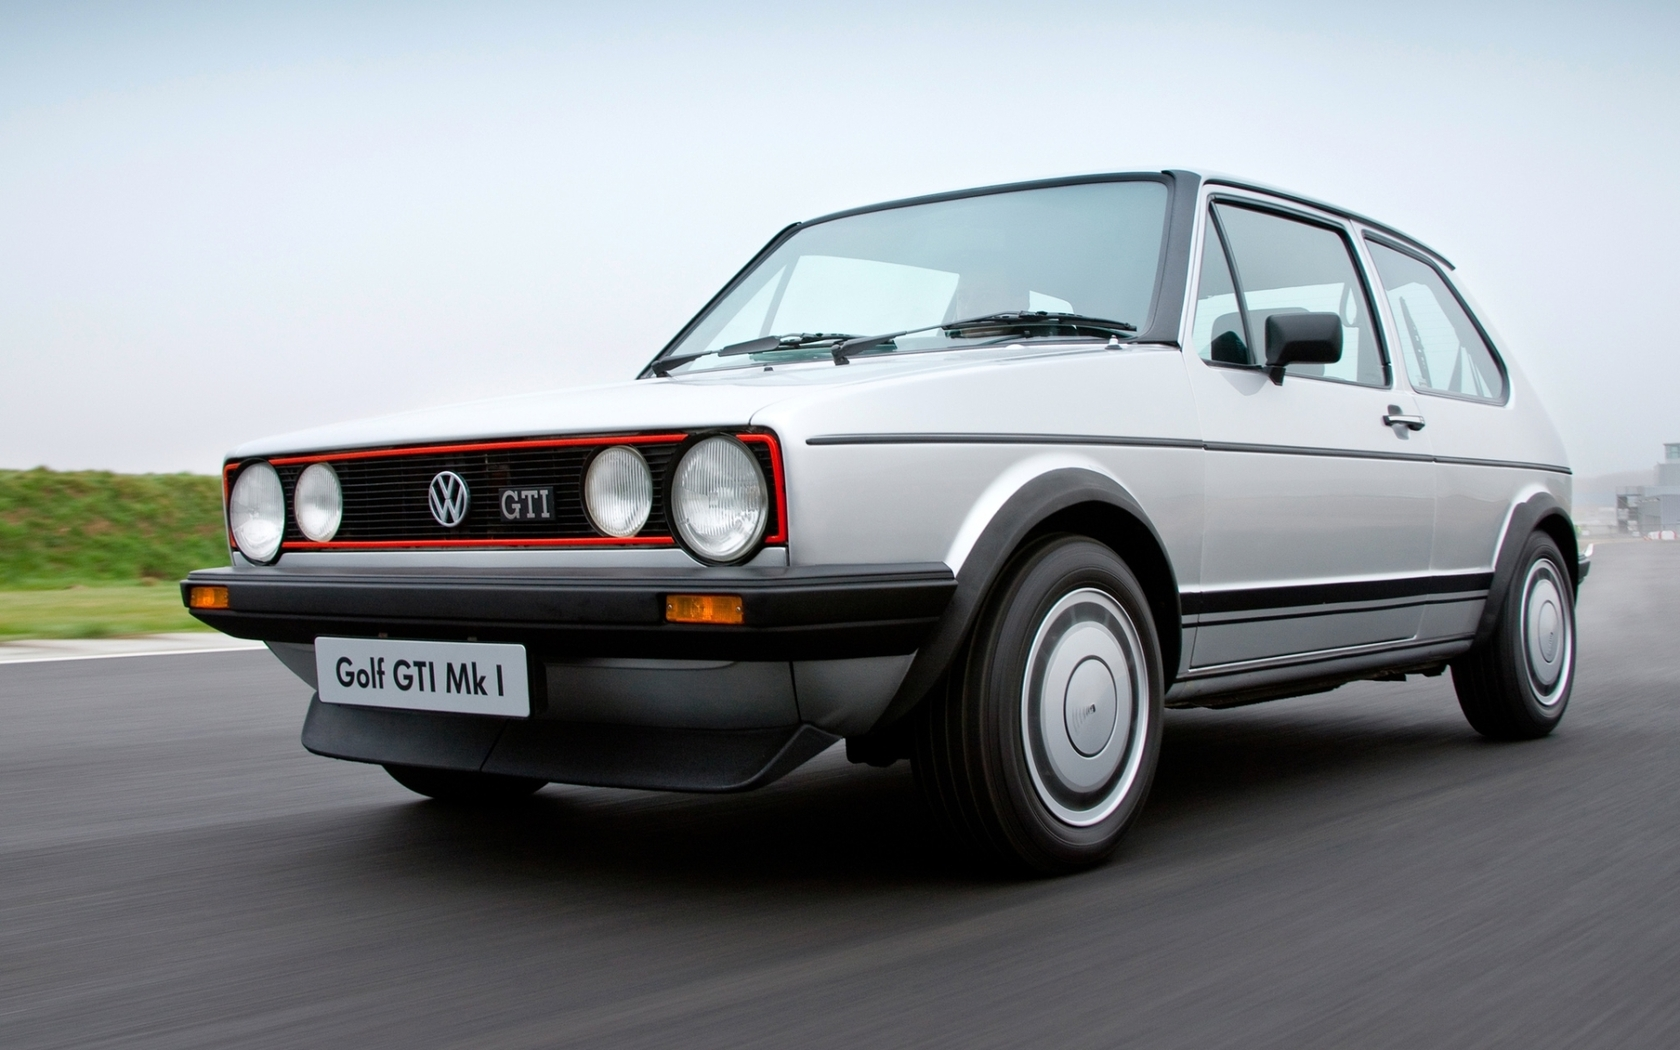 1985 Vw Scirocco For Sale likewise  further 1990 Volkswagen Jetta Overview C5961 together with Volkswagen Gti A History In Pictures further 316368 Toyota Camry Water Leak. on 1985 volkswagen rabbit